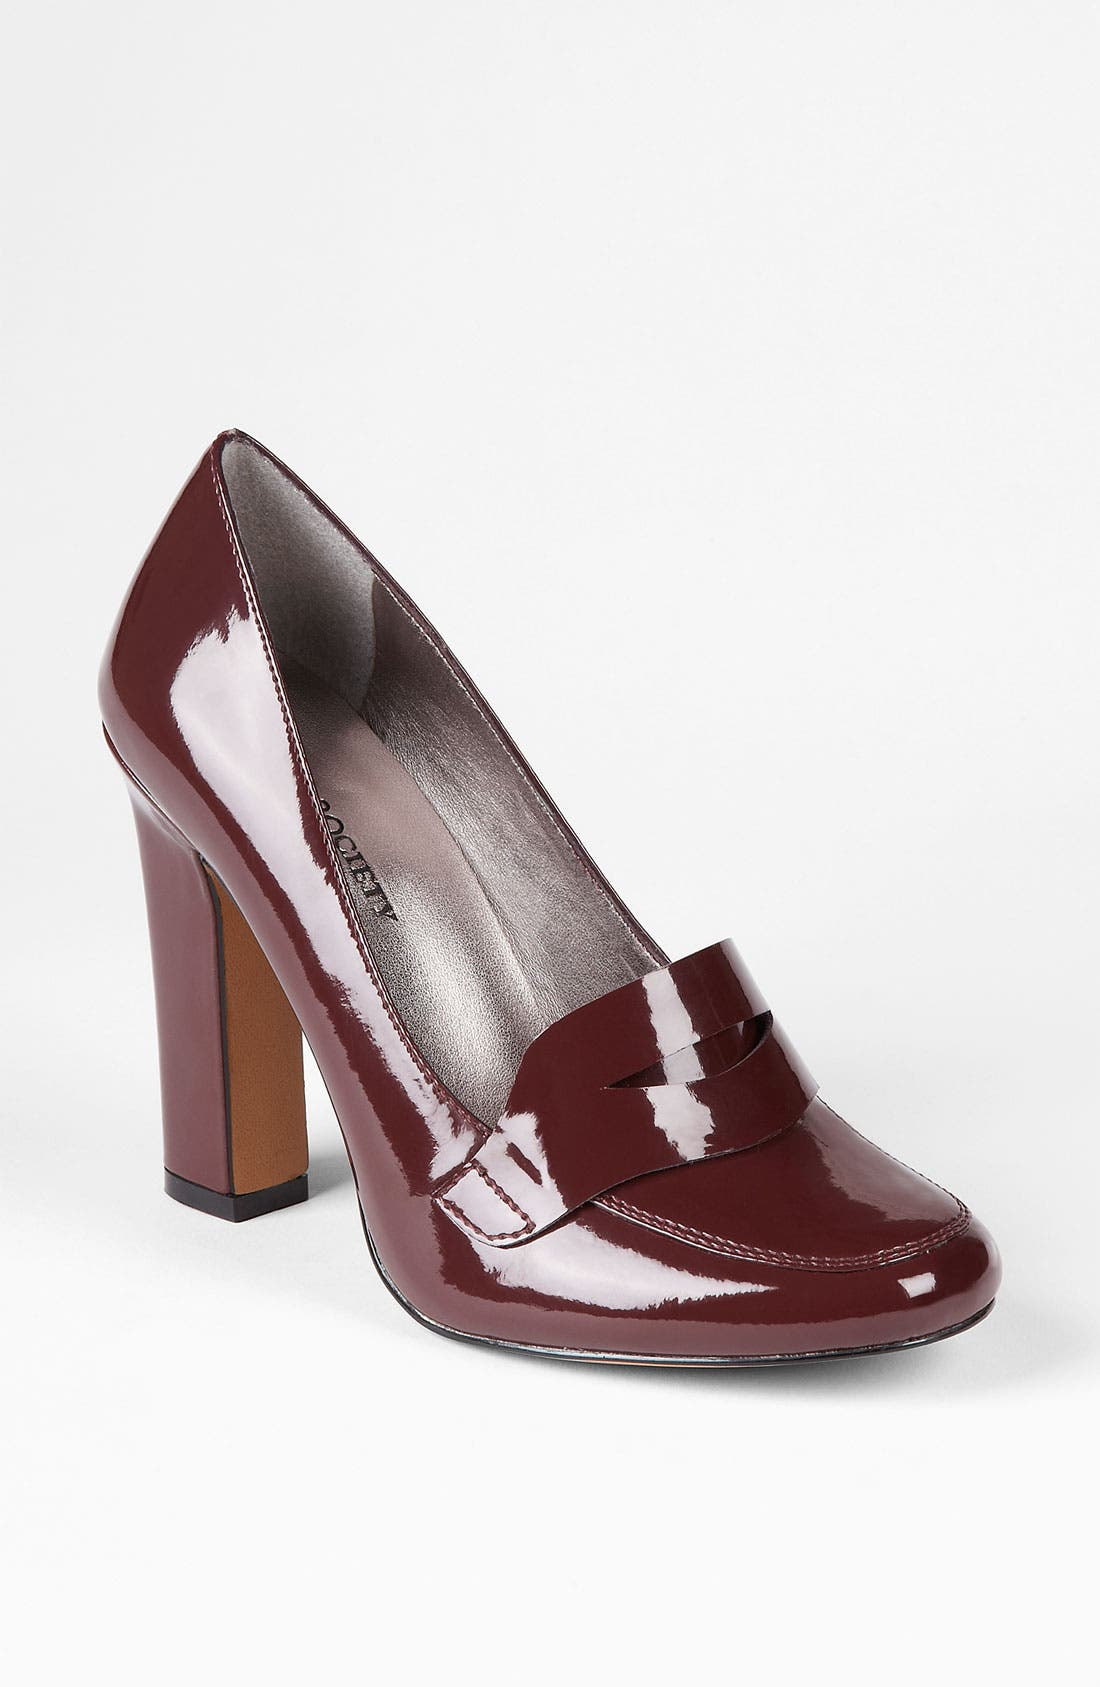 Main Image - Sole Society 'Analisa' Pump